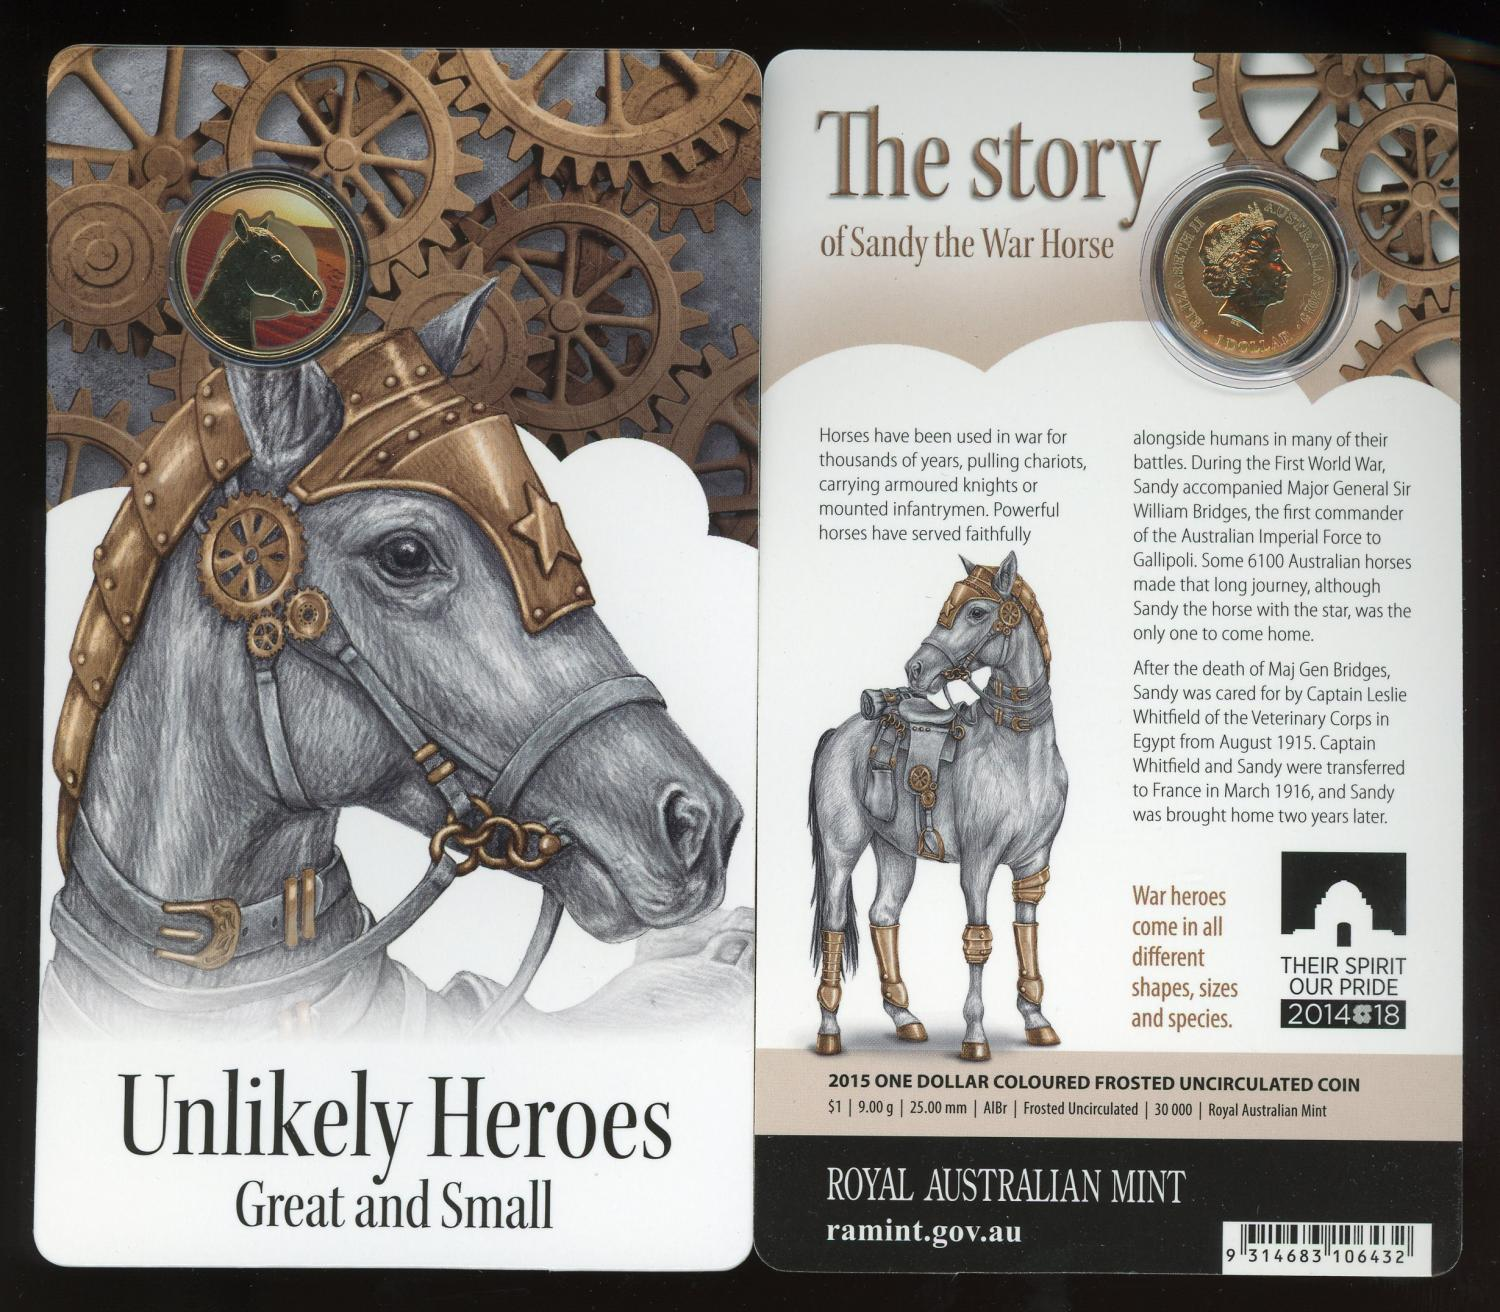 Thumbnail for 2015 Unlikely Heroes - Sandy the War Horse